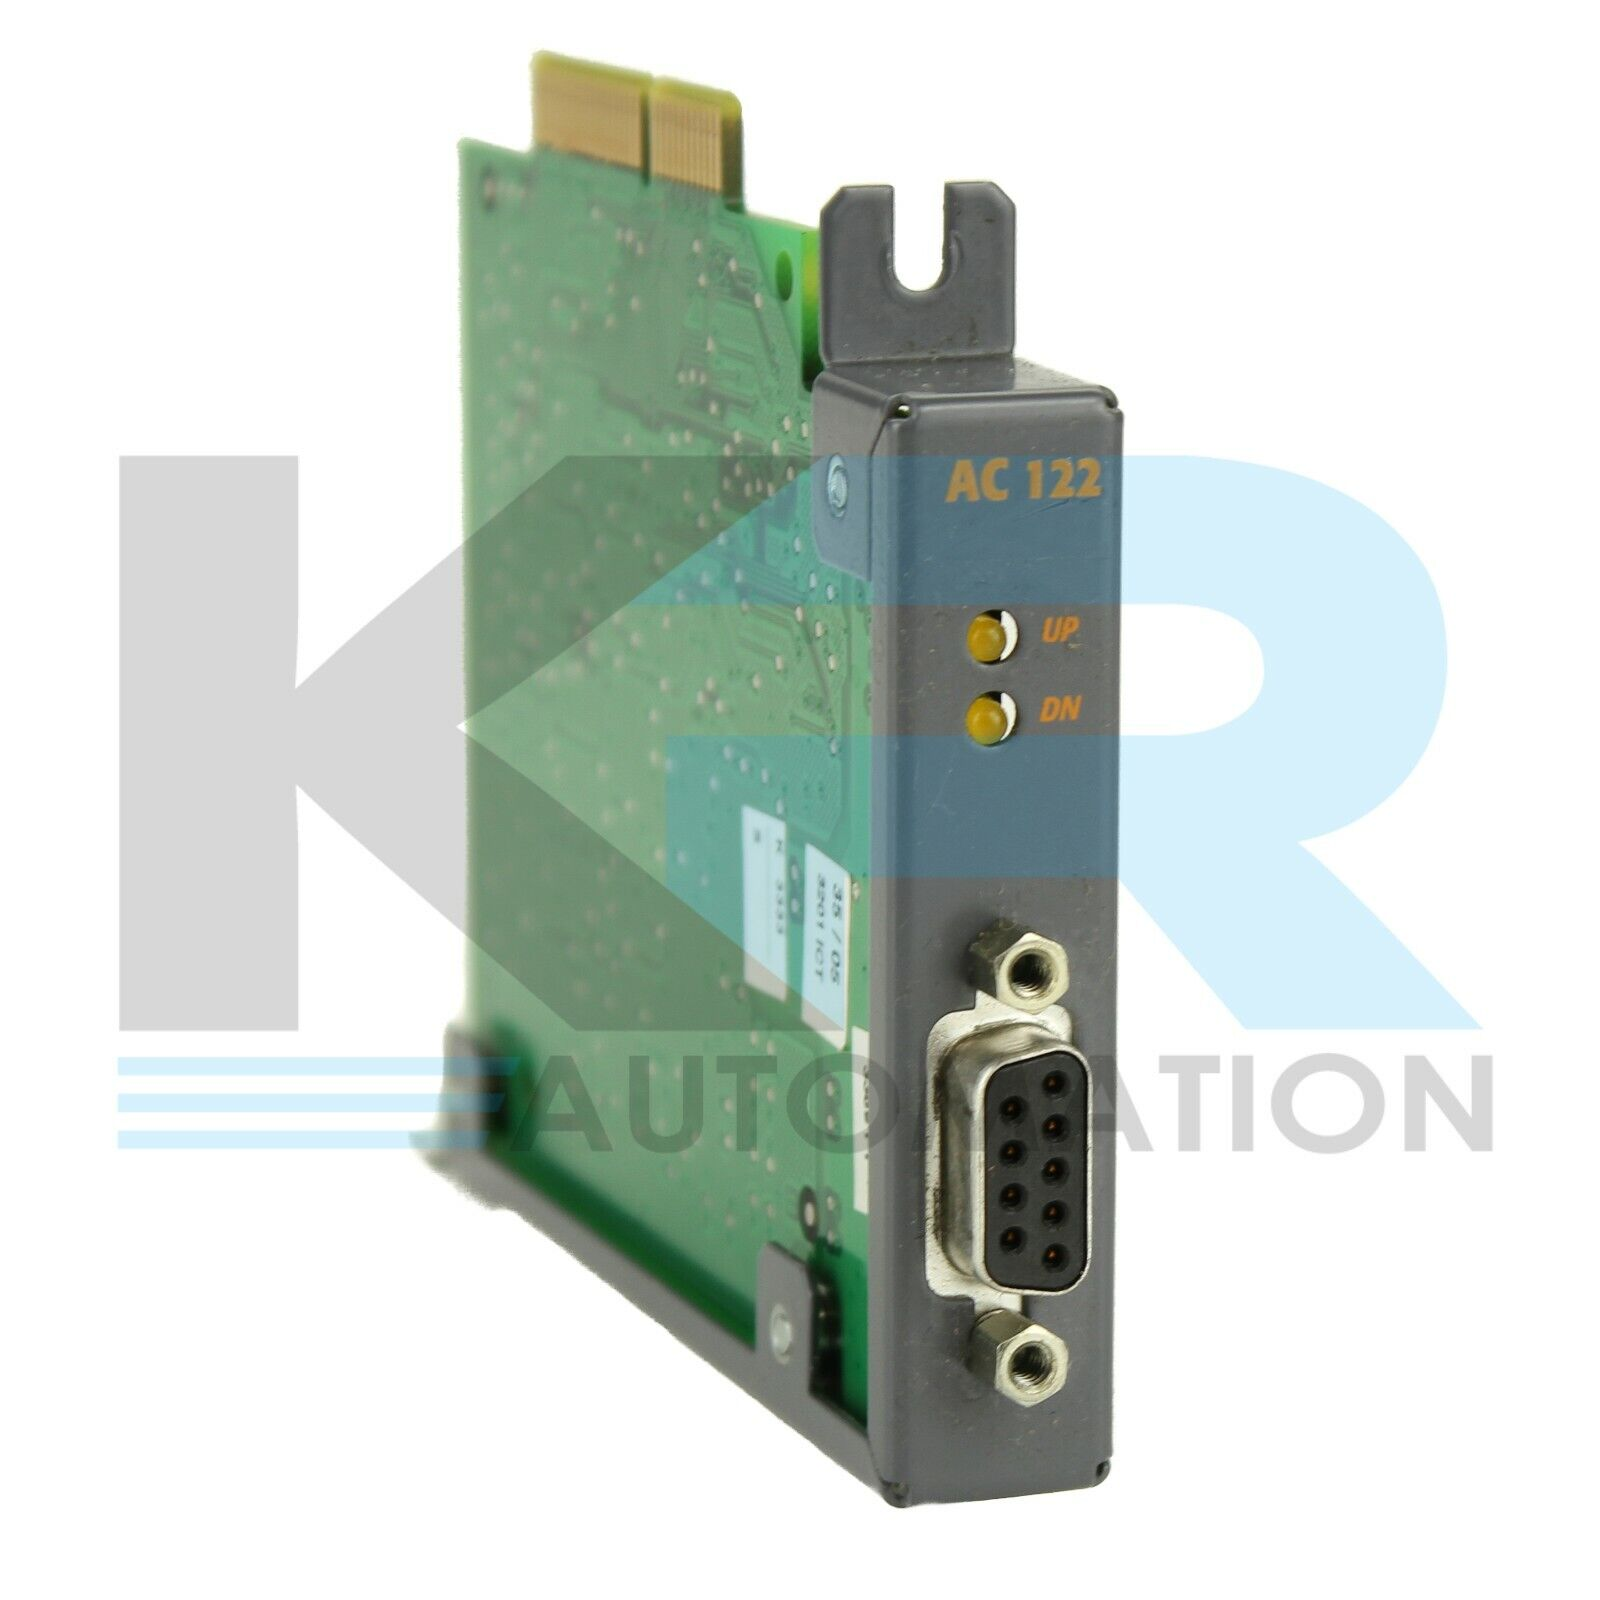 B&R Automation 8AC122.60-1 ACOPOS AC 122 Resolver Interface Module